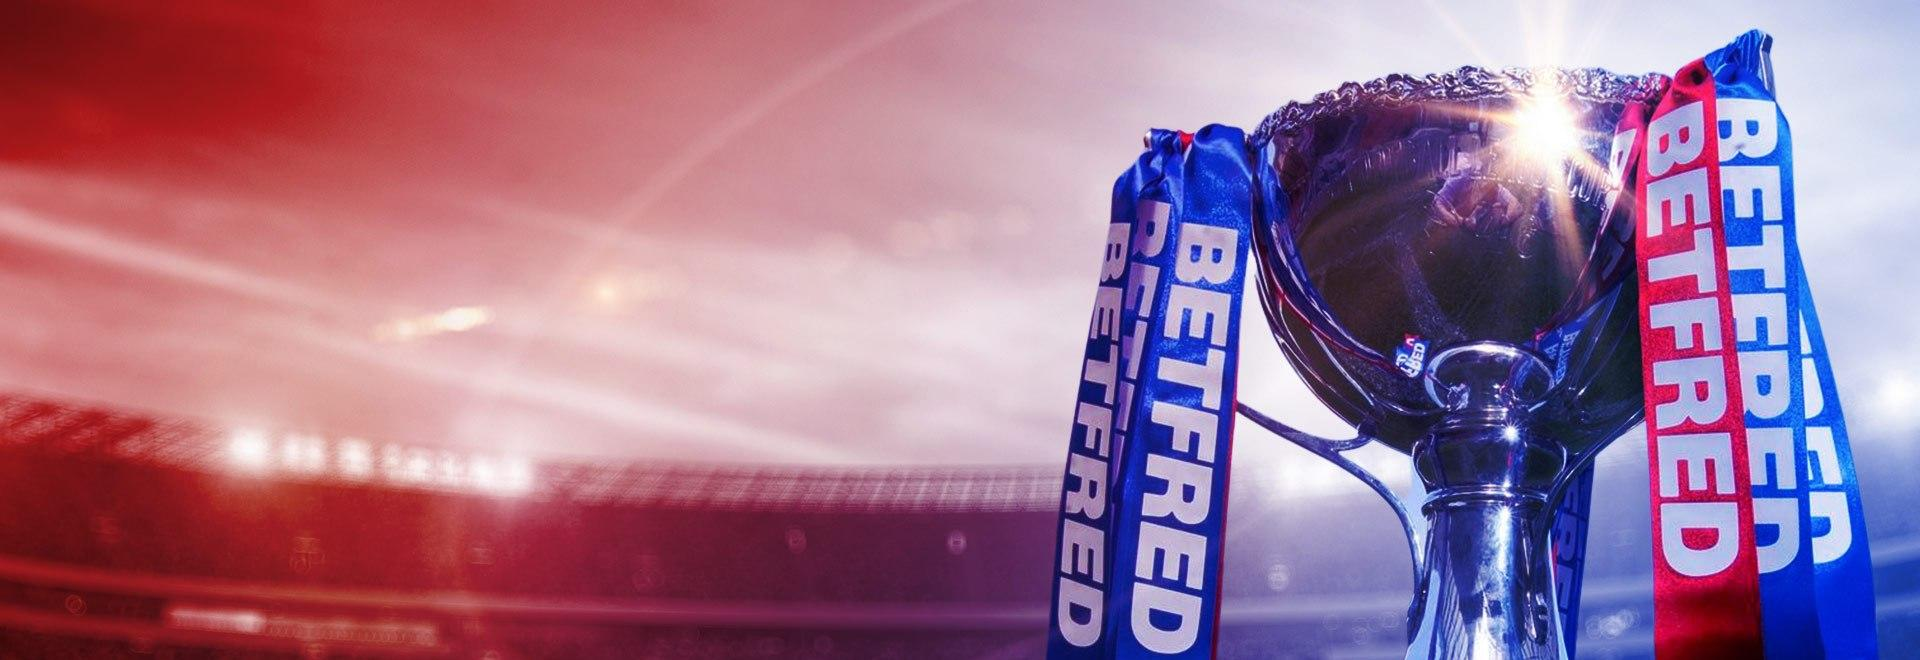 Scottish League Betfred Cup